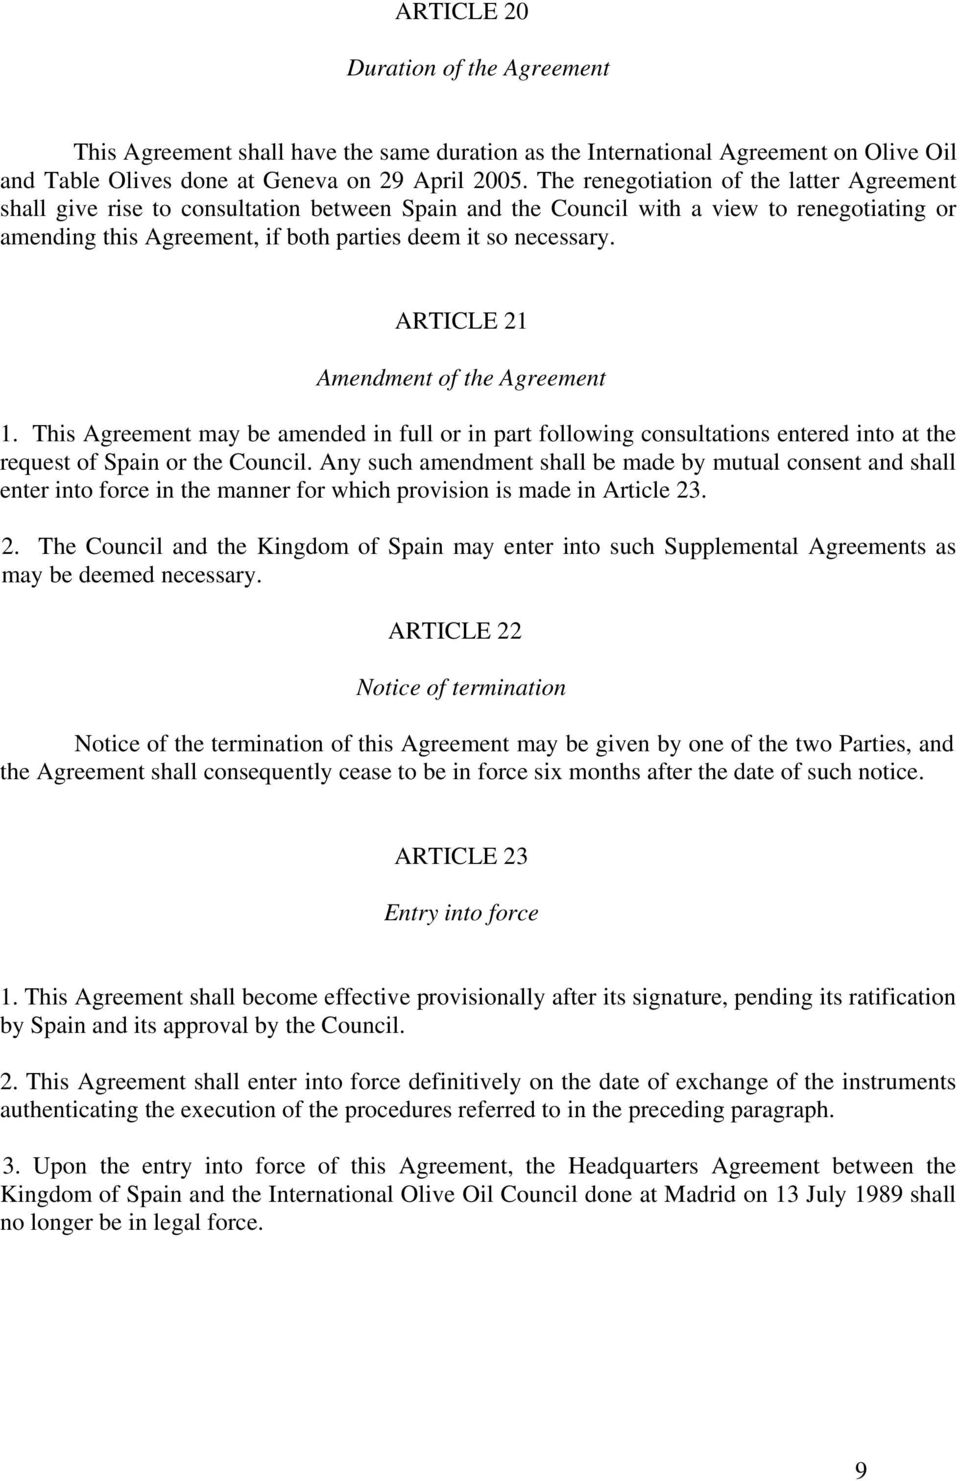 ARTICLE 21 Amendment of the Agreement 1. This Agreement may be amended in full or in part following consultations entered into at the request of Spain or the Council.